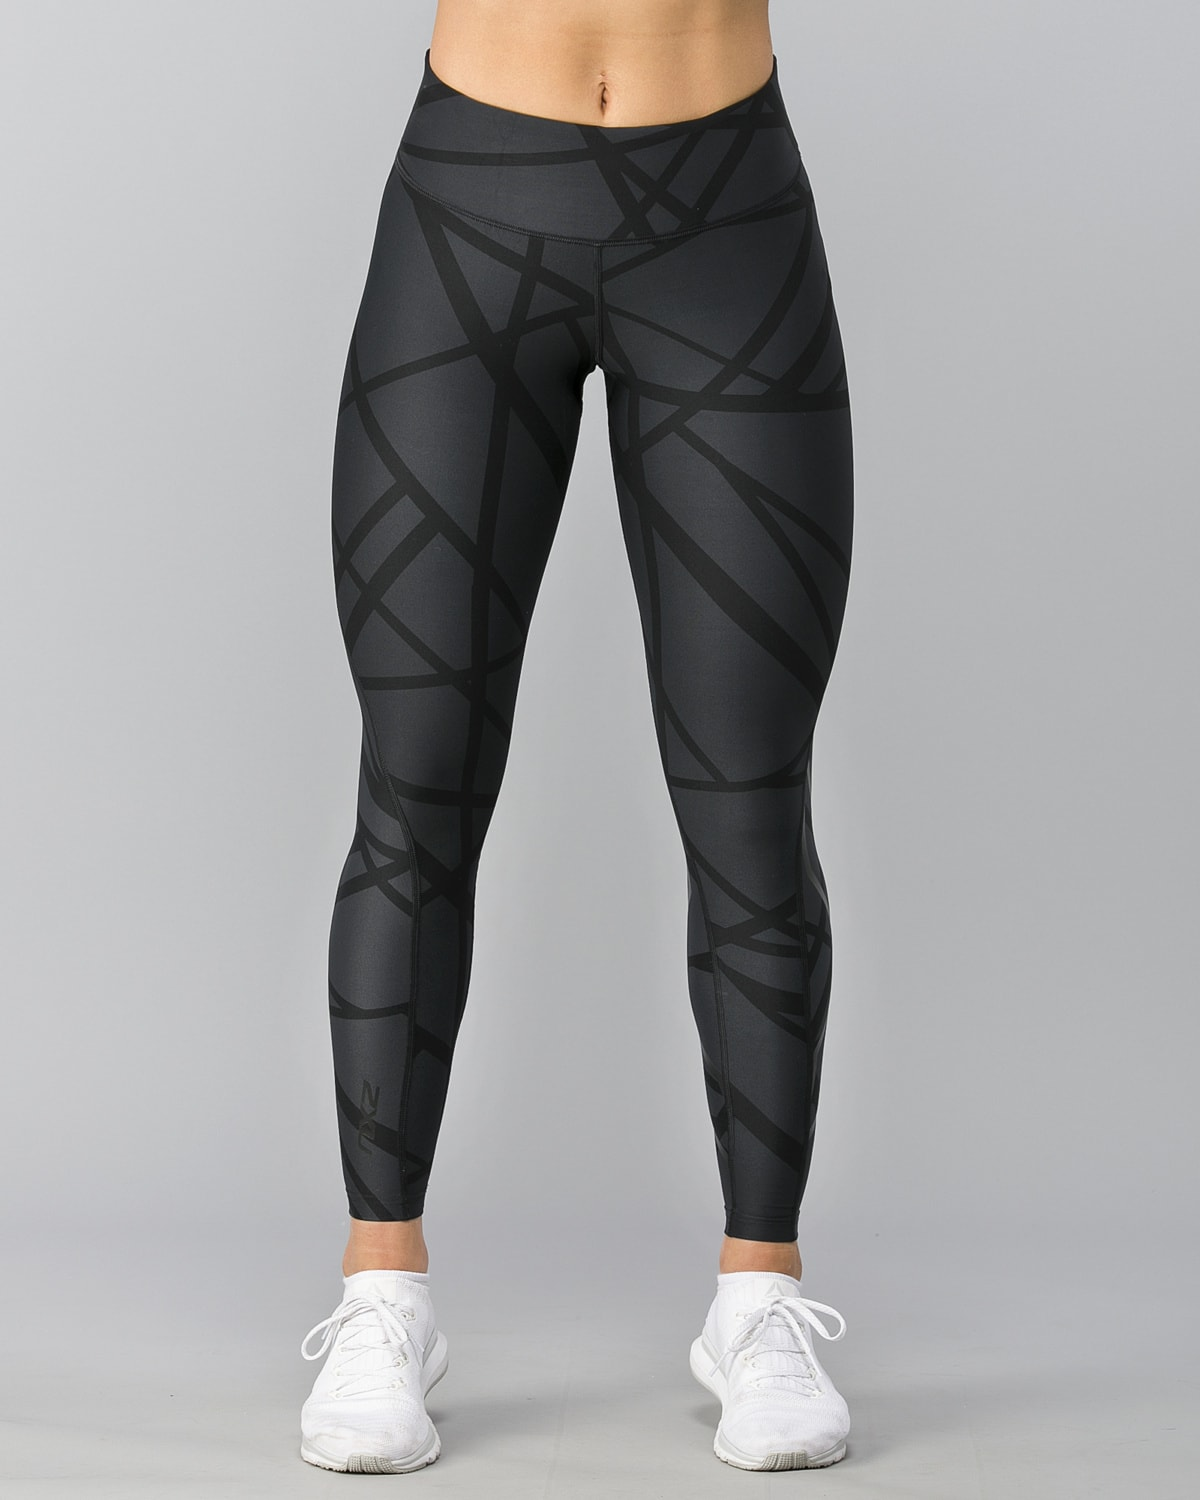 2XU-Print-Mid-Rise-Comp-Tights–Paint-Strokes-Nero